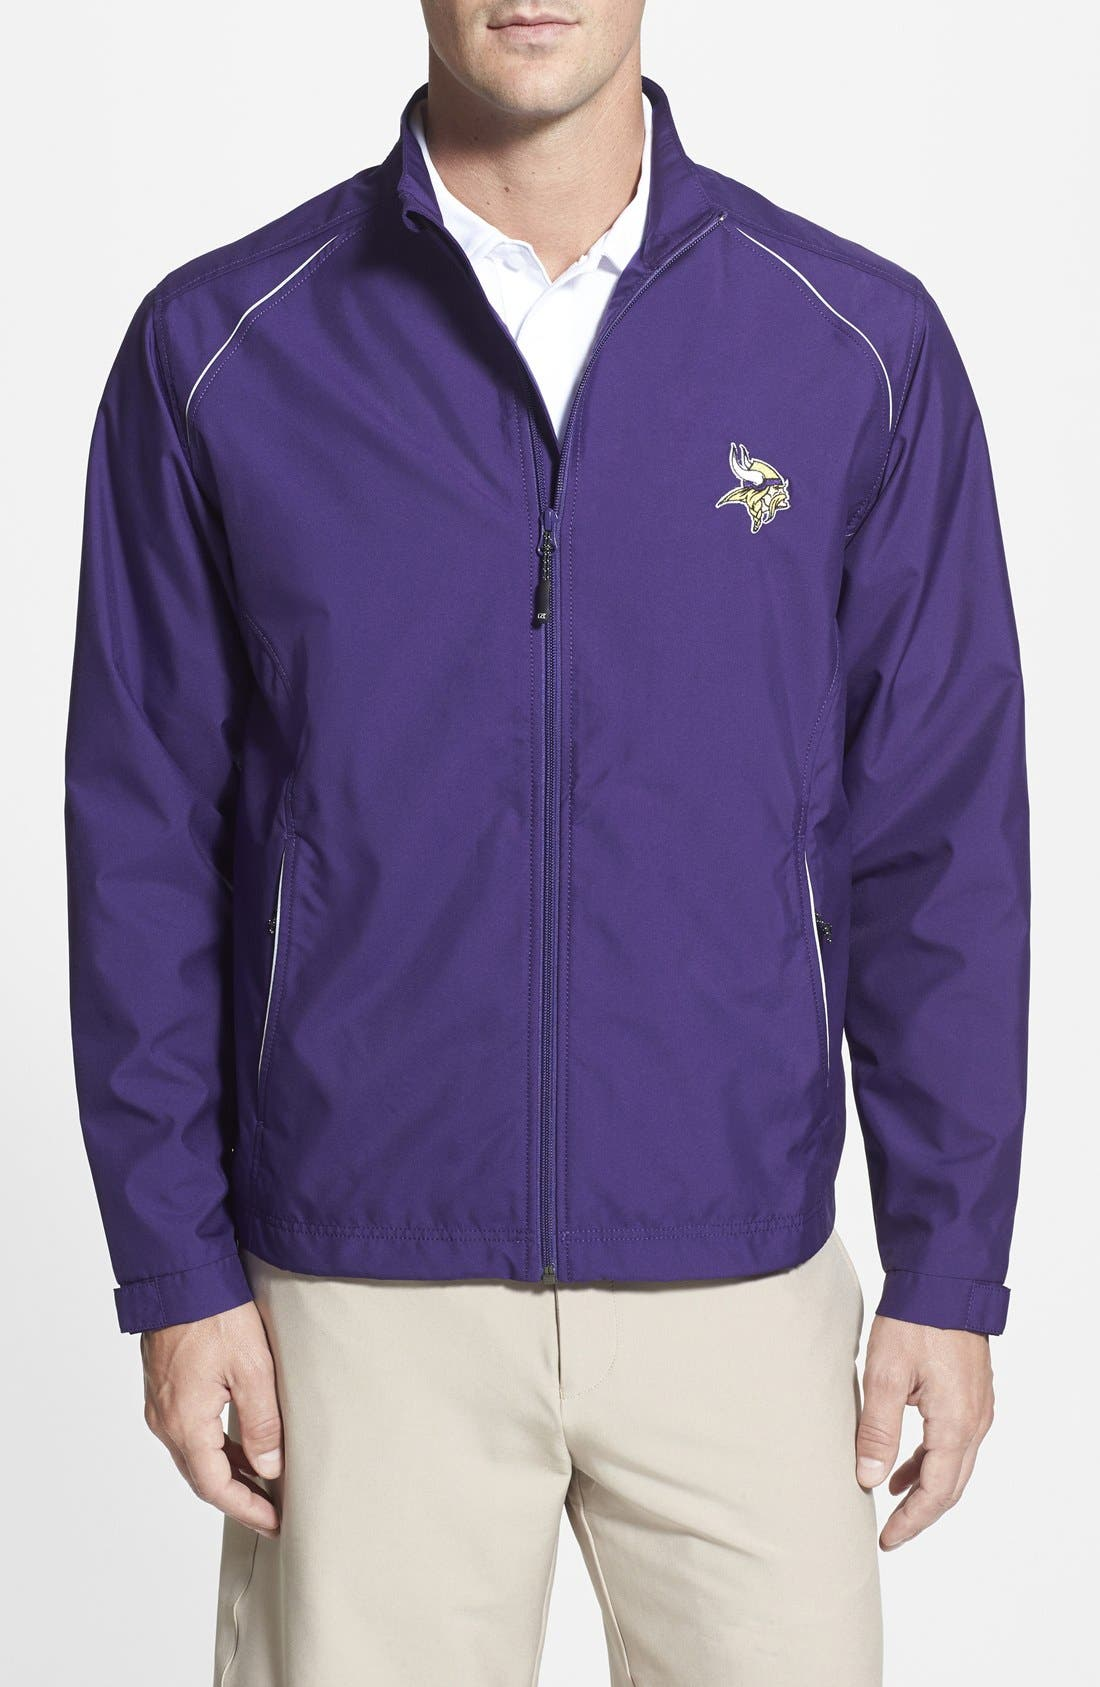 Alternate Image 1 Selected - Cutter & Buck Minnesota Vikings - Beacon WeatherTec Wind & Water Resistant Jacket